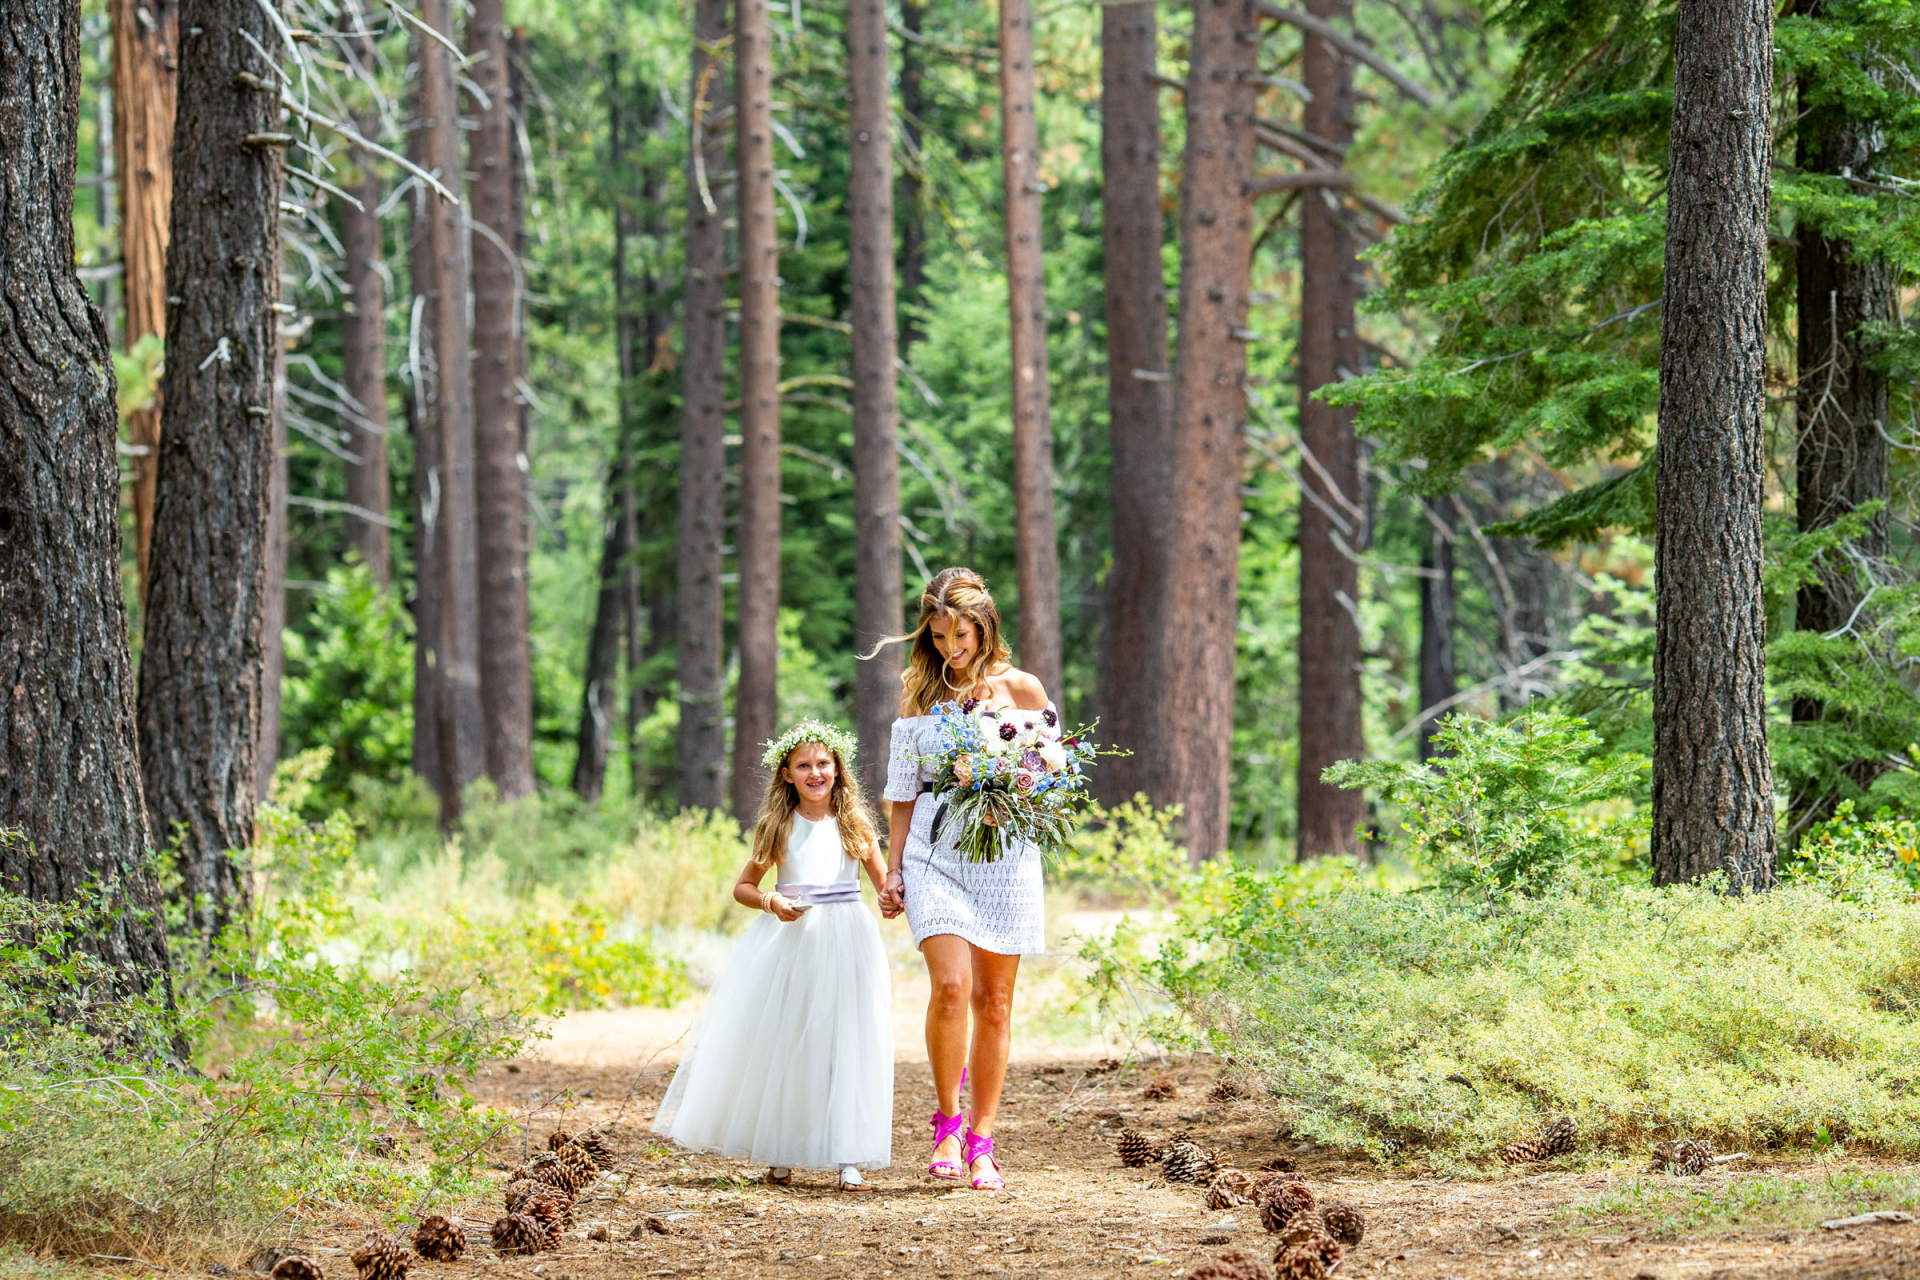 Outdoor Wedding Photography - Skylandia Park Lake Tahoe, CA   The bride-to-be and the flower girl make their way down the path